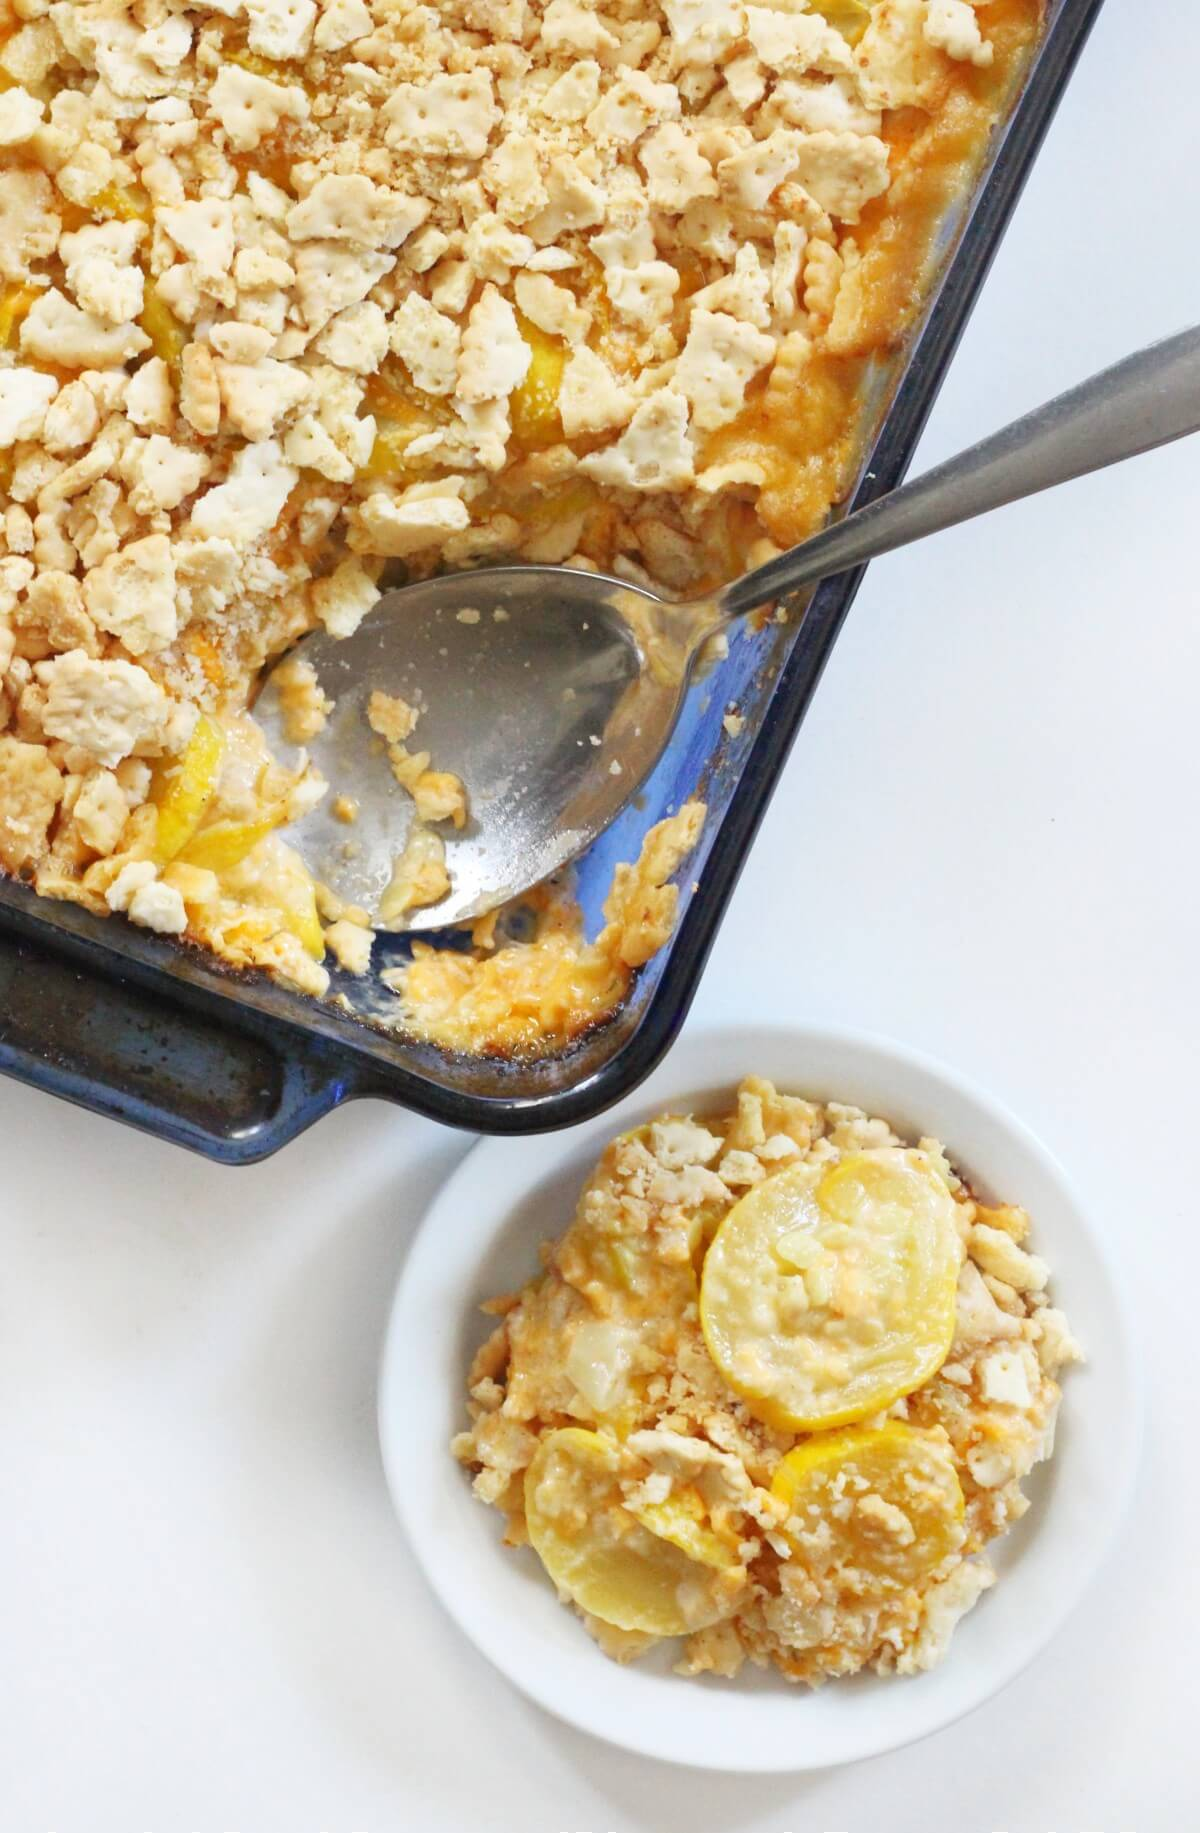 vegan southern squash casserole in baking dish and plated serving